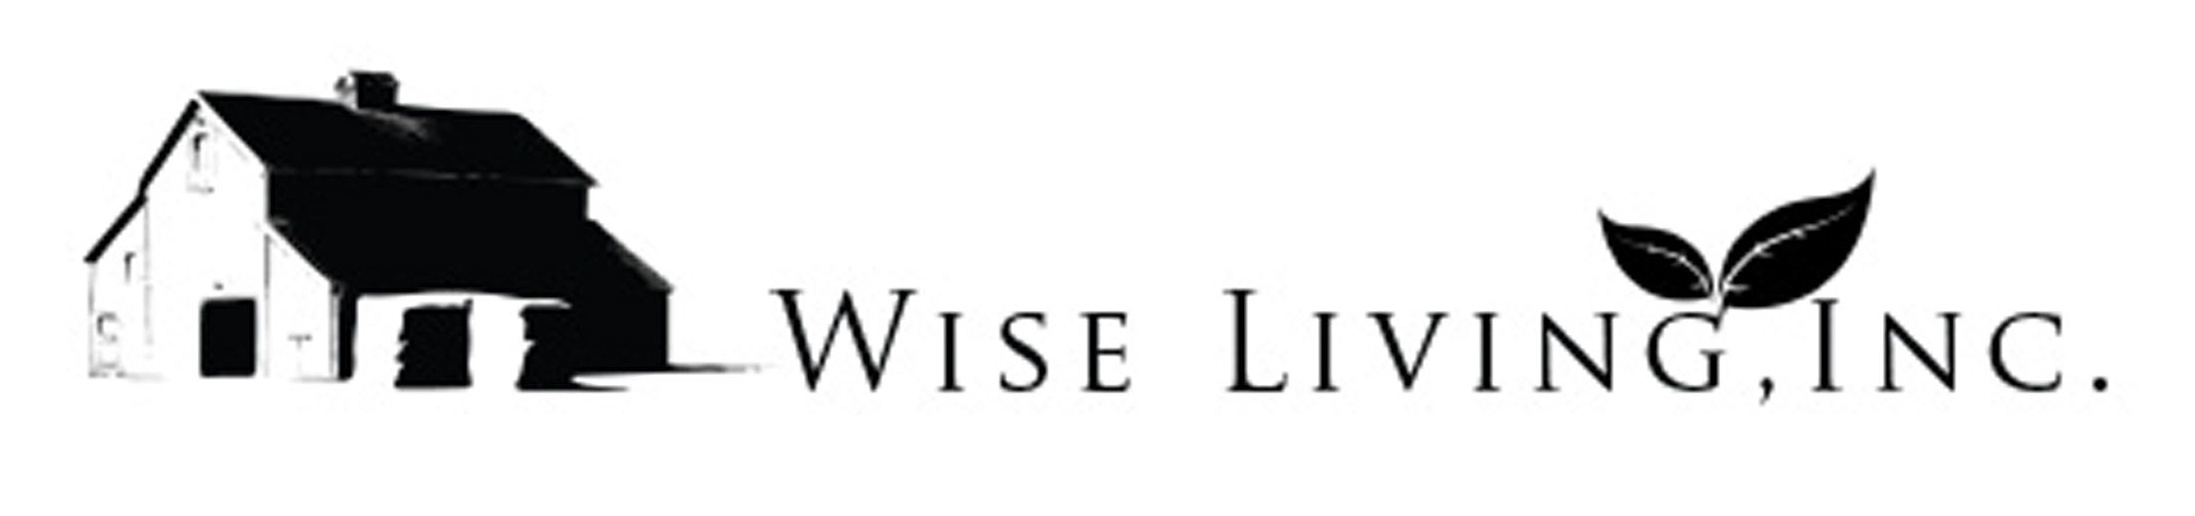 Made-in-California-manufacturer-Wise-Living-Inc-Logo-cropped.jpg